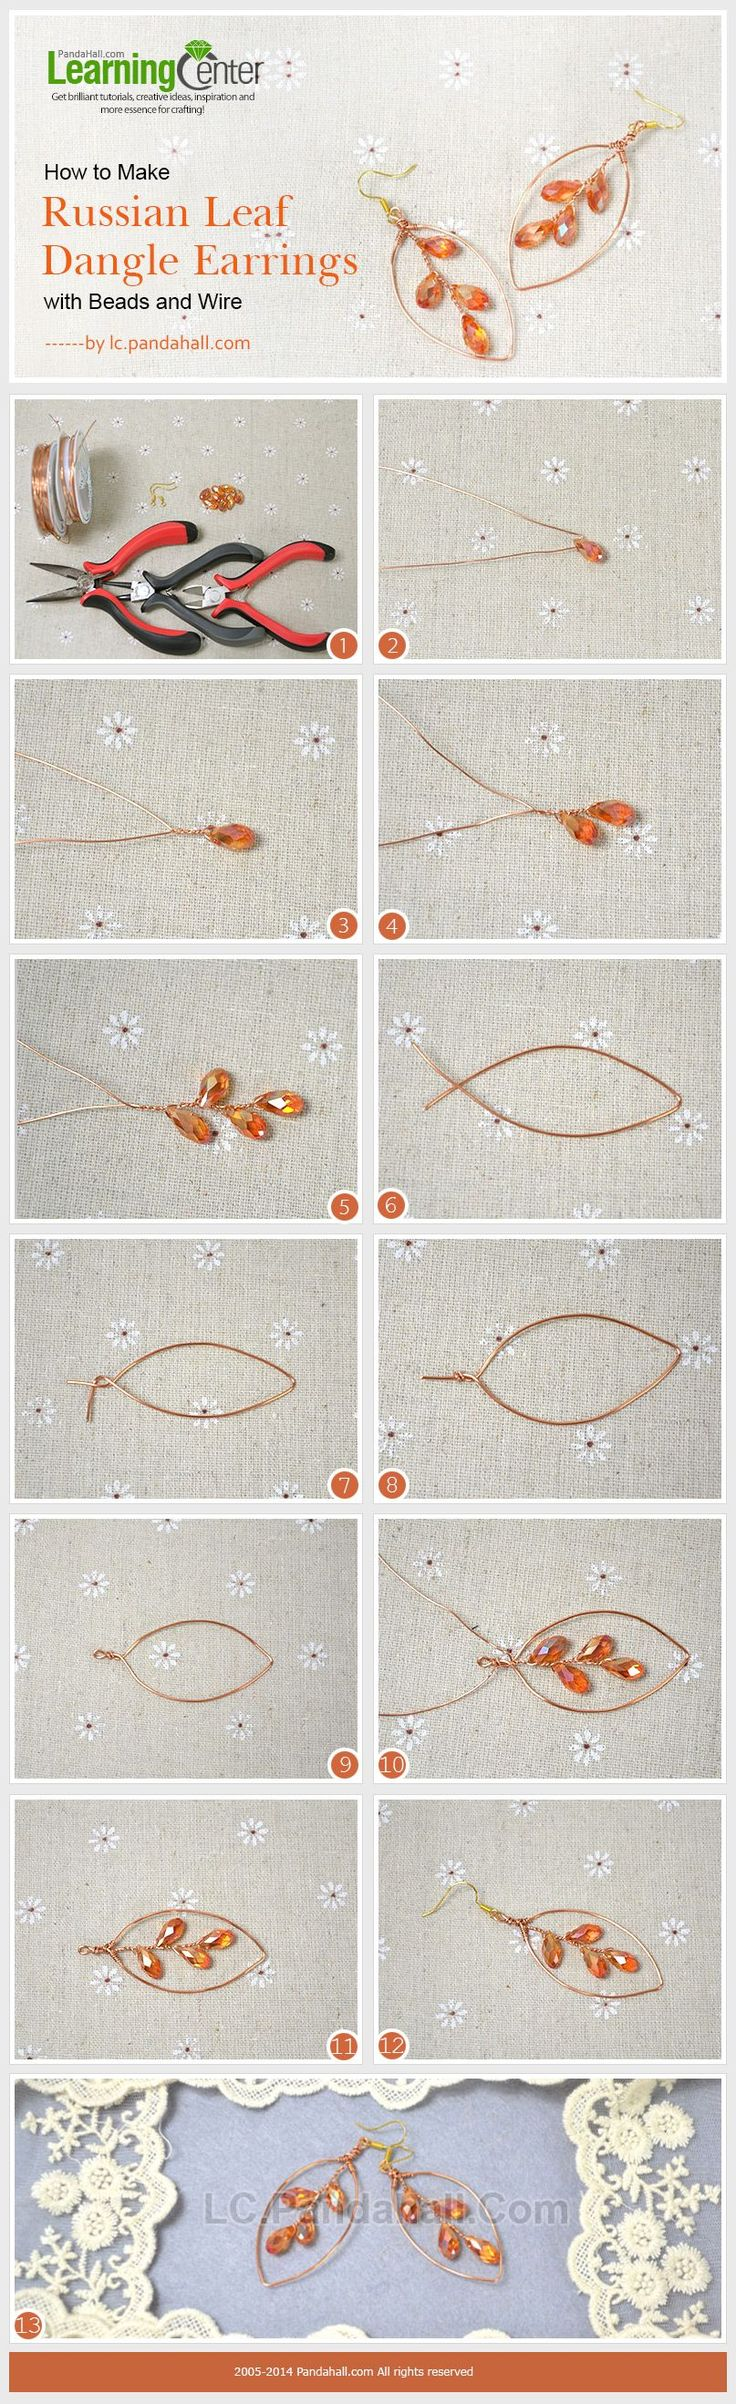 How to Make Russian Leaf Dangle Earrings with Beads and Wire